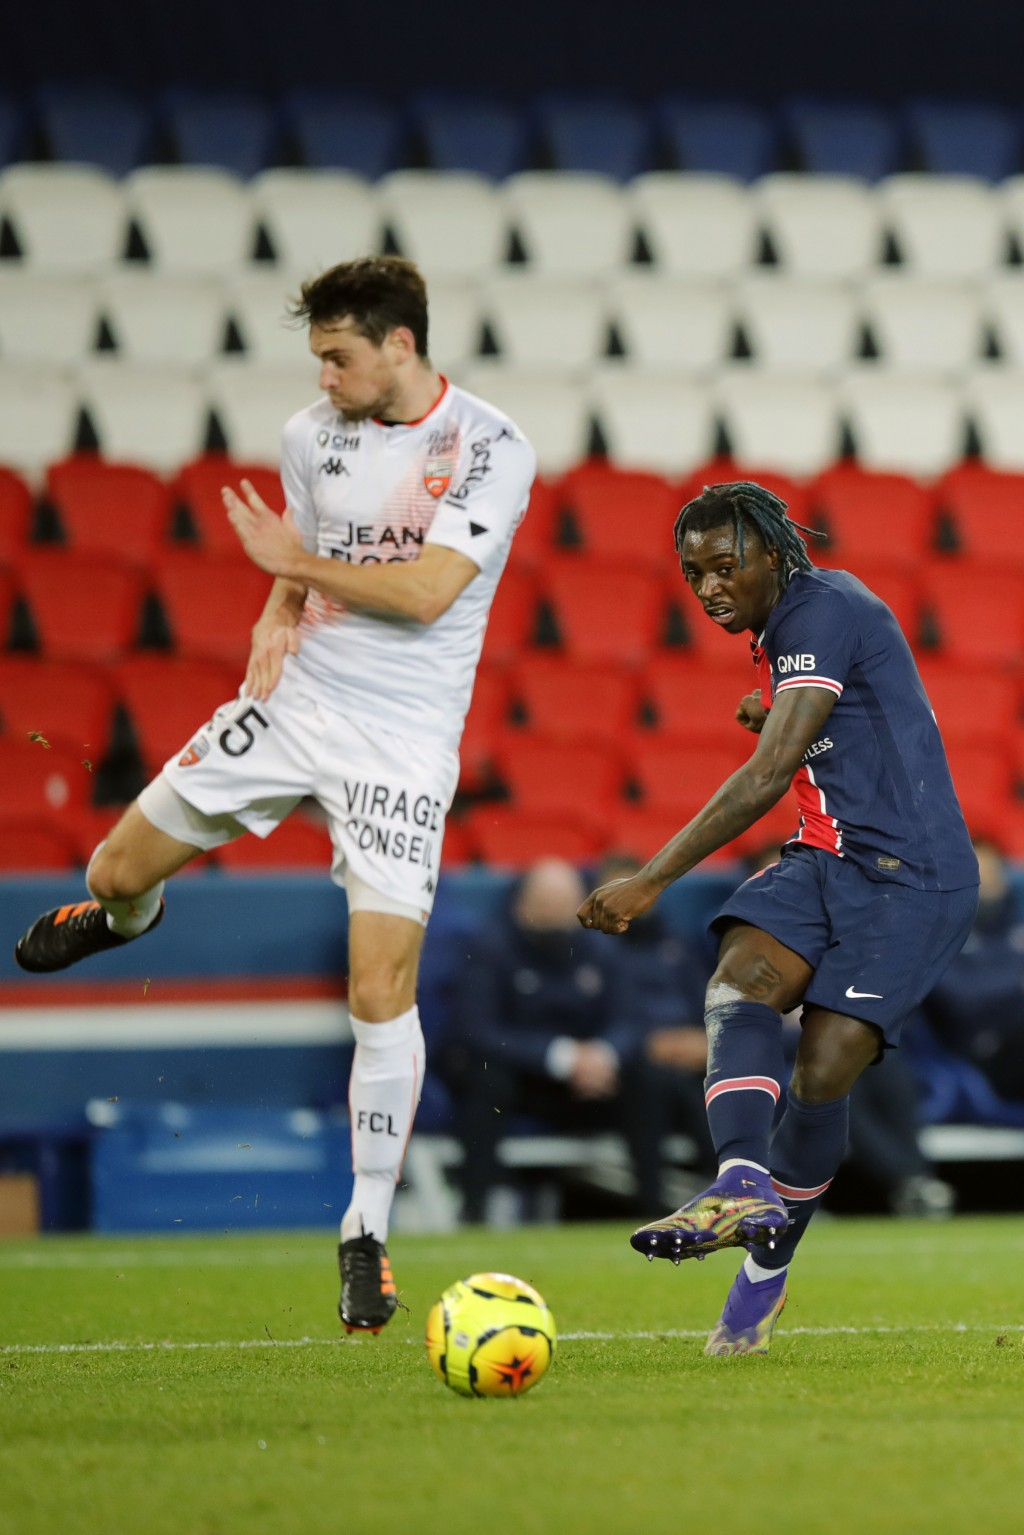 PSG's Moise Kean, right, kicks the ball past Lorient's Vincent Le Goff during the French League One soccer match between Paris Saint-Germain and Lorie...